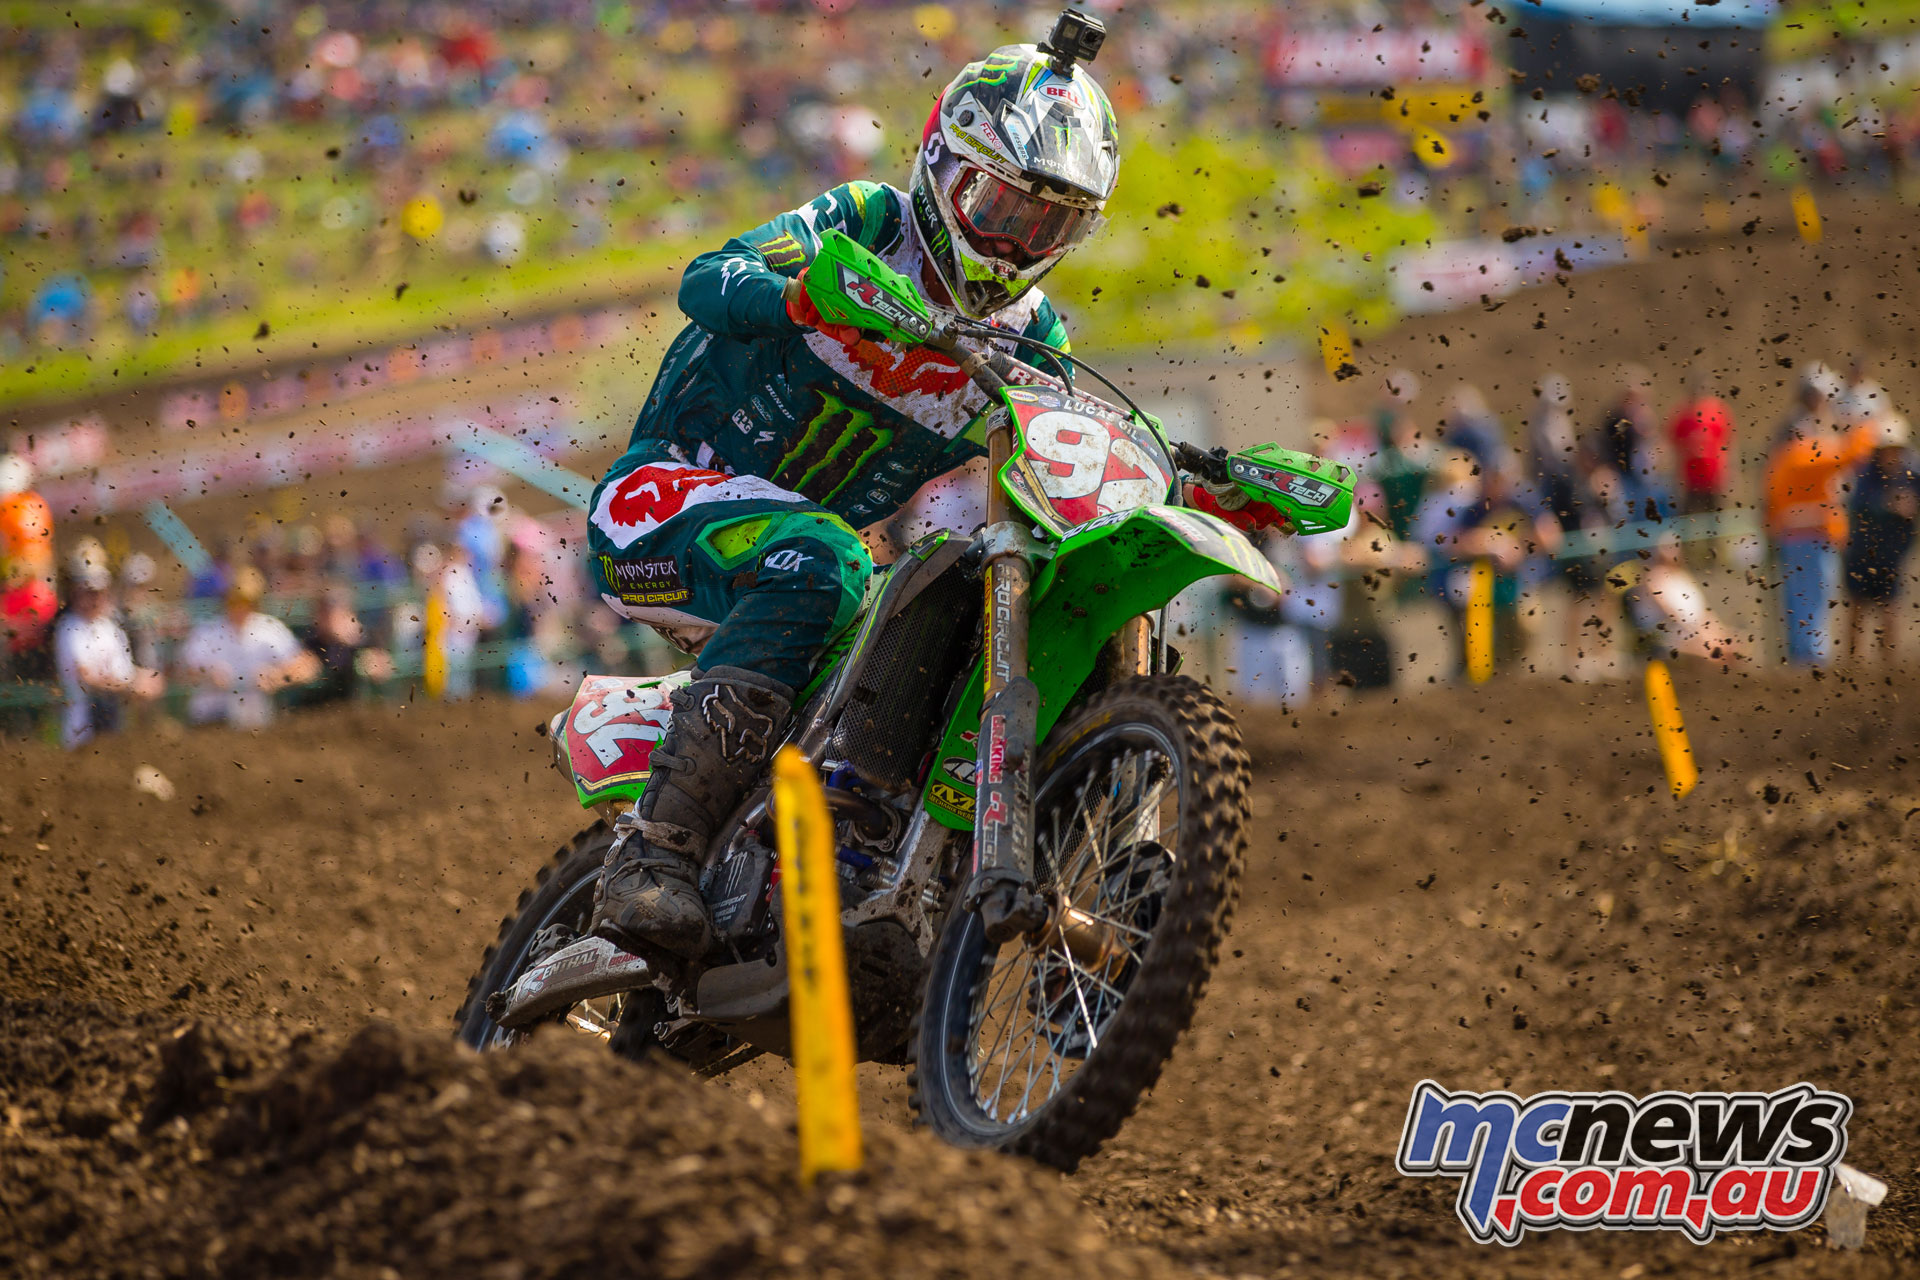 AMA MX Rnd Thunder Valley Cianciarulo JK MX Lakewood